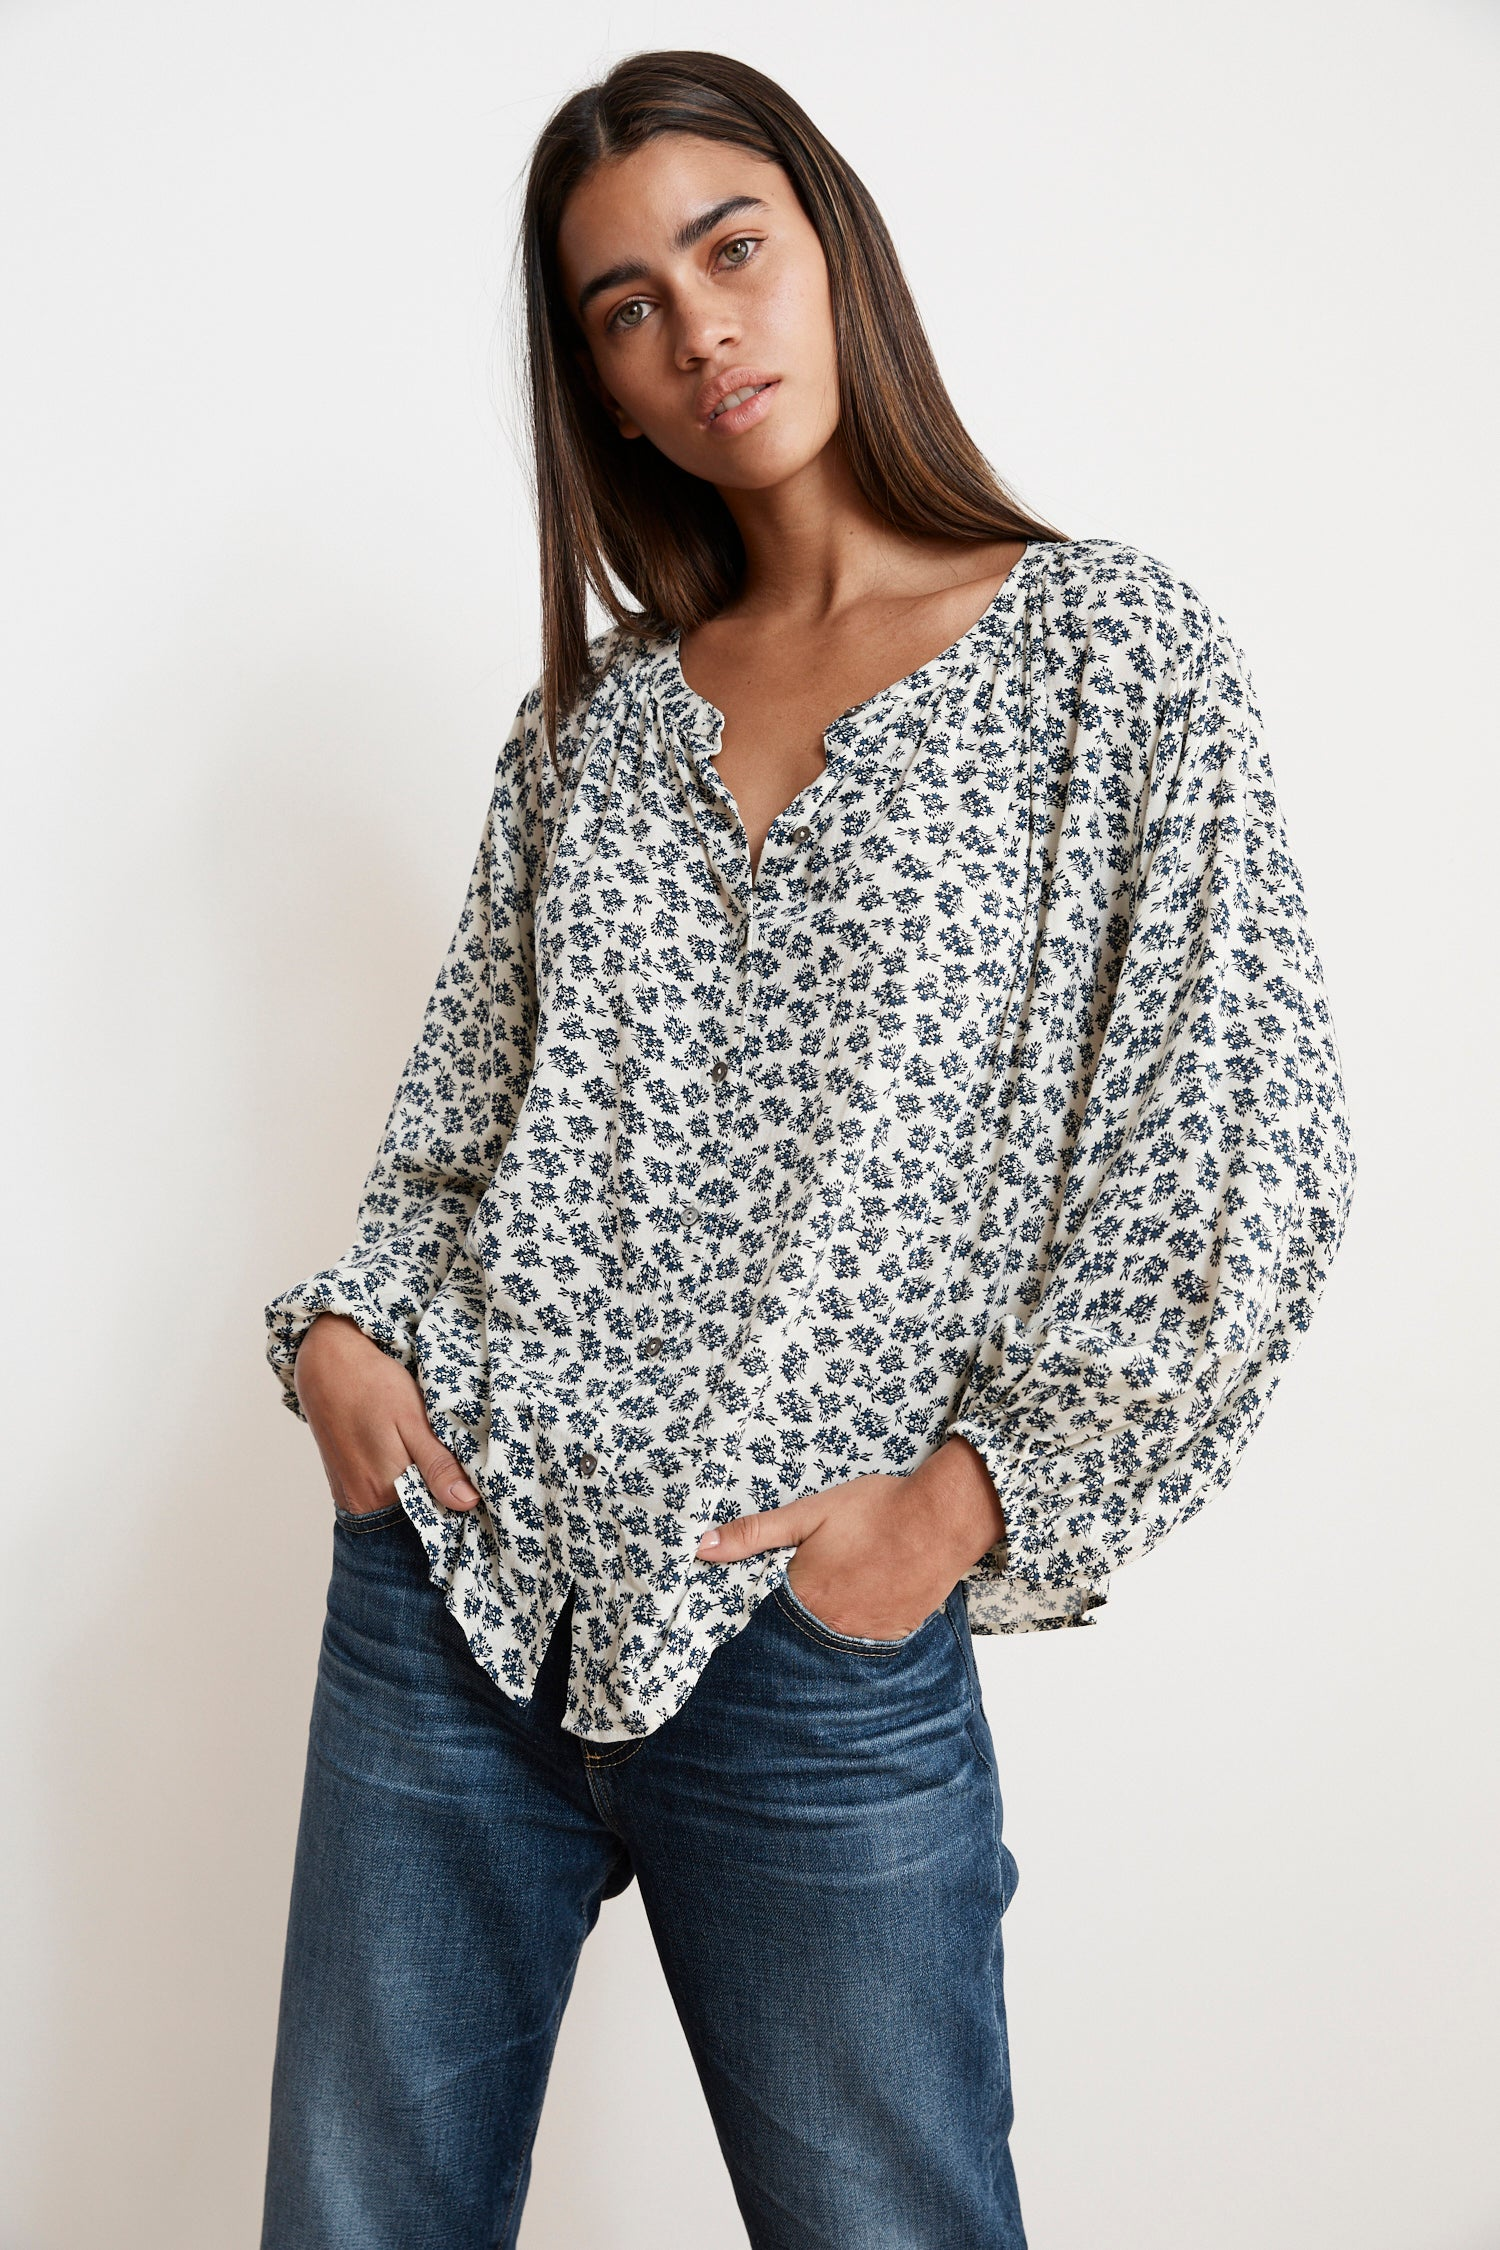 KISSAN SHEER PRINTED GAUZE BUTTON UP BLOUSE IN SWISS